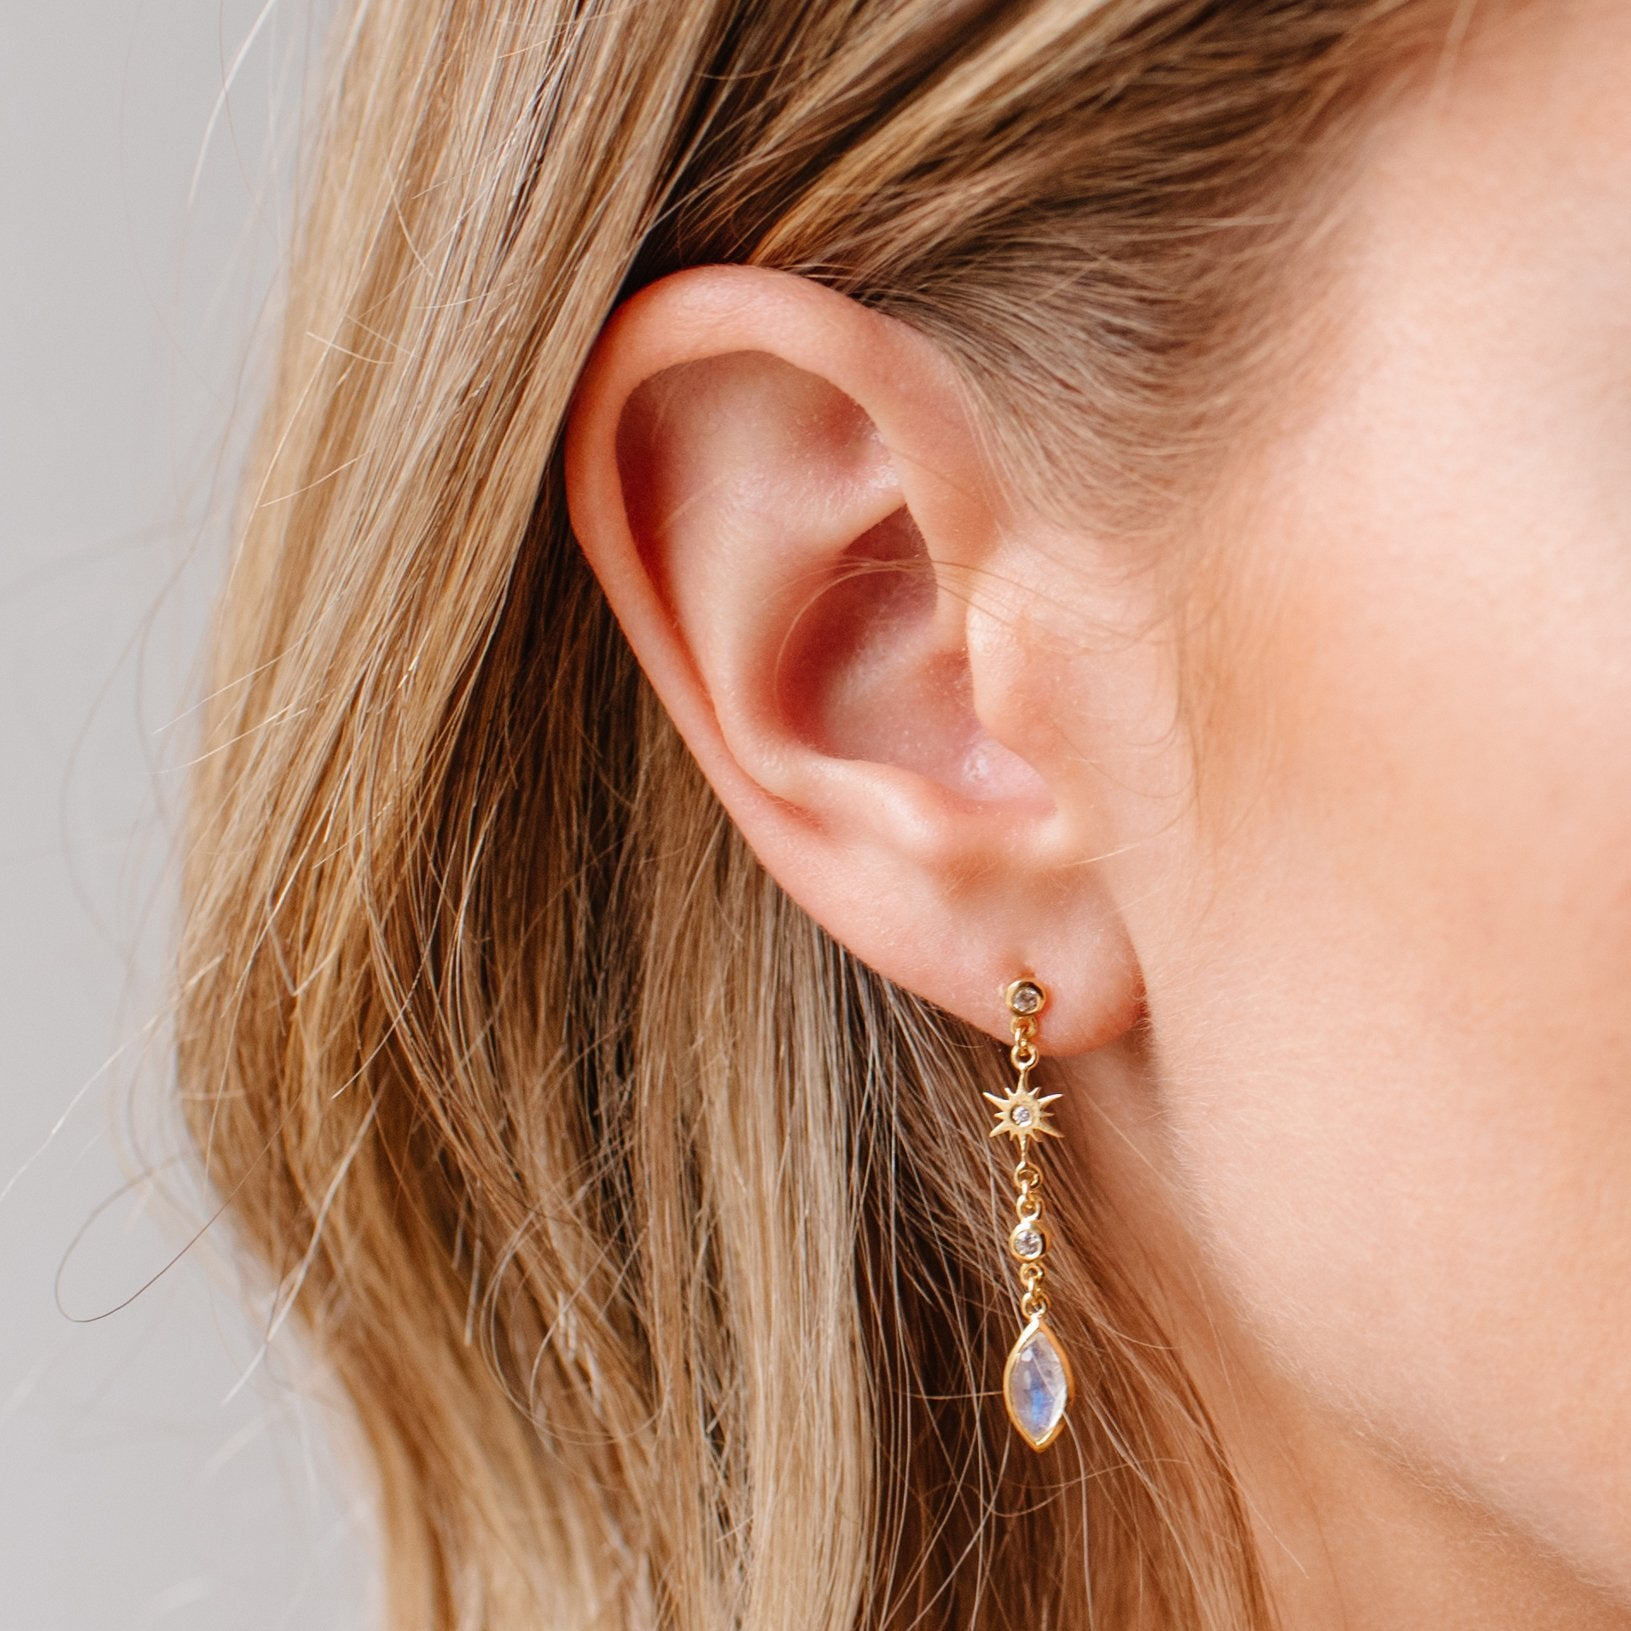 TINY BELIEVE MARQUISE DROP EARRINGS - CUBIC ZIRCONIA, MOONSTONE & GOLD - SO PRETTY CARA COTTER